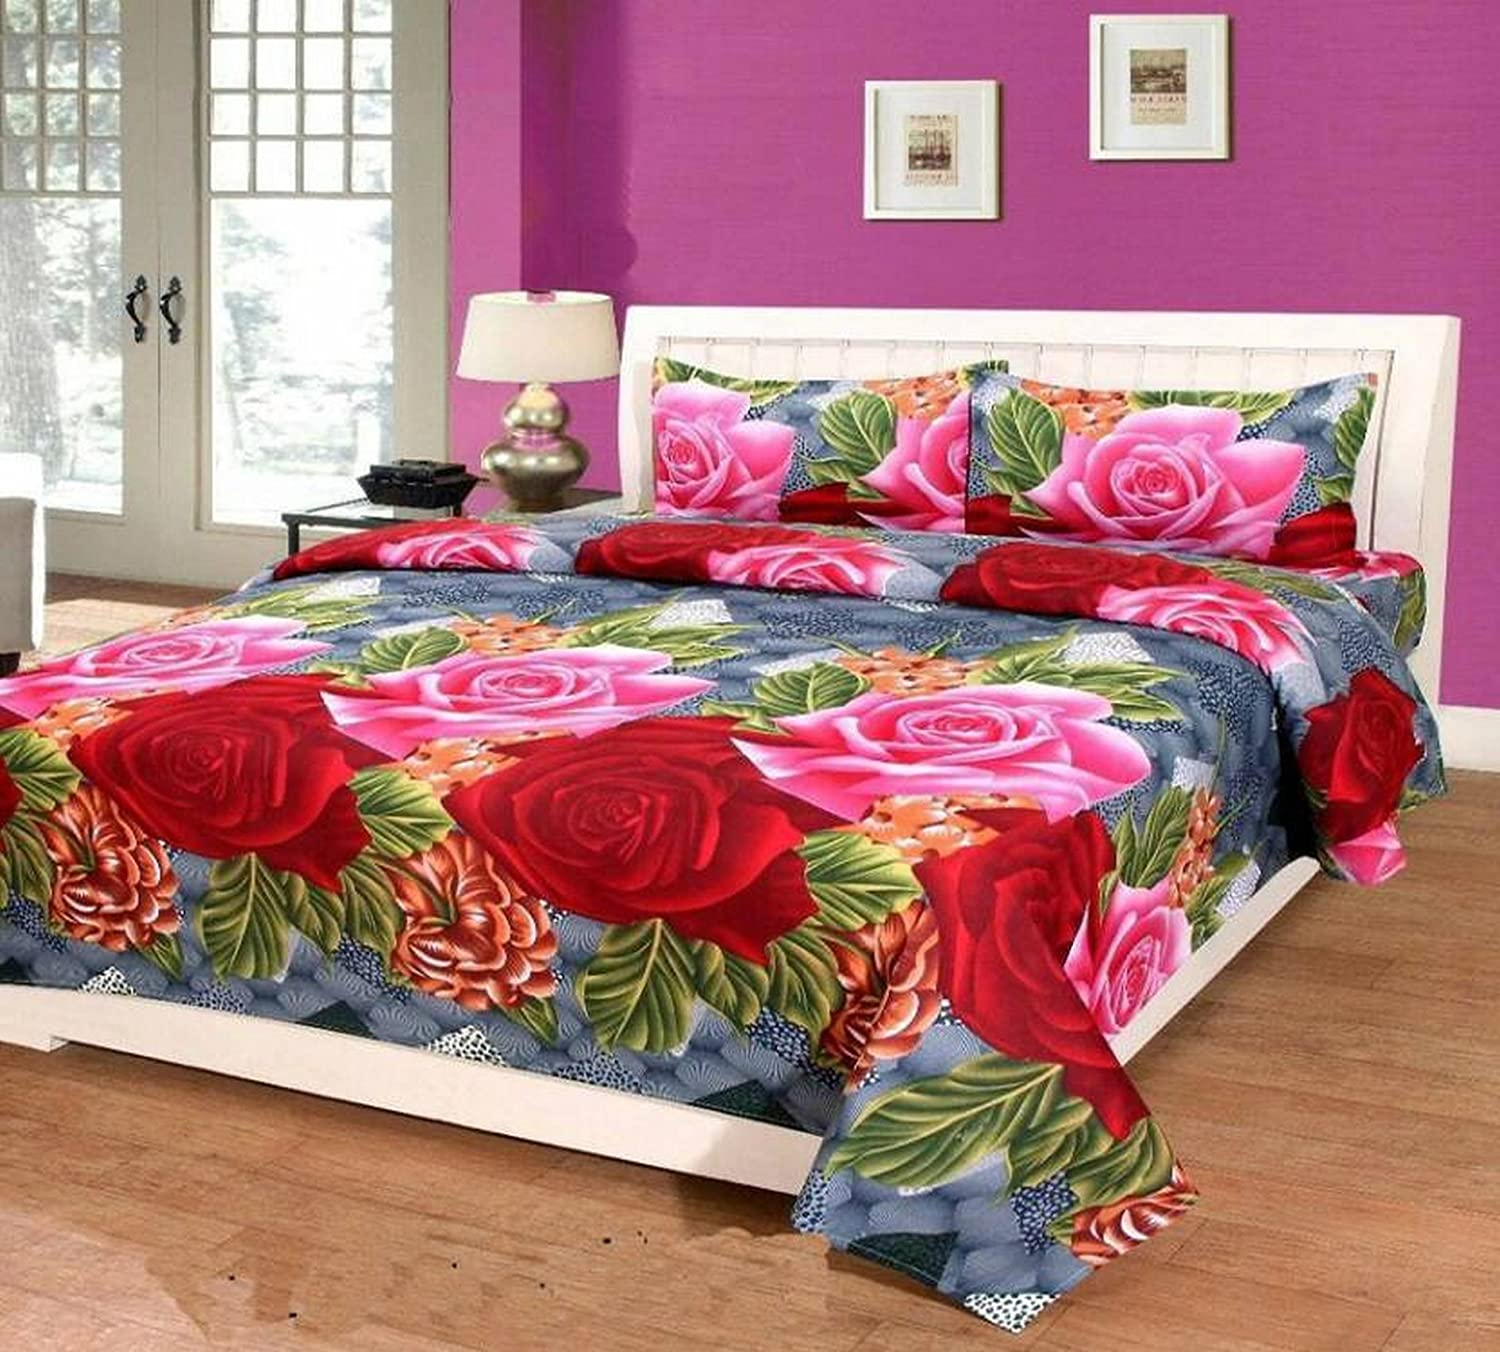 486edf7a4e2230 Buy Supreme Home Collective 144 TC Microfibre Double Bedsheet with 2 Pillow  Covers - Red Online at Low Prices in India - Amazon.in